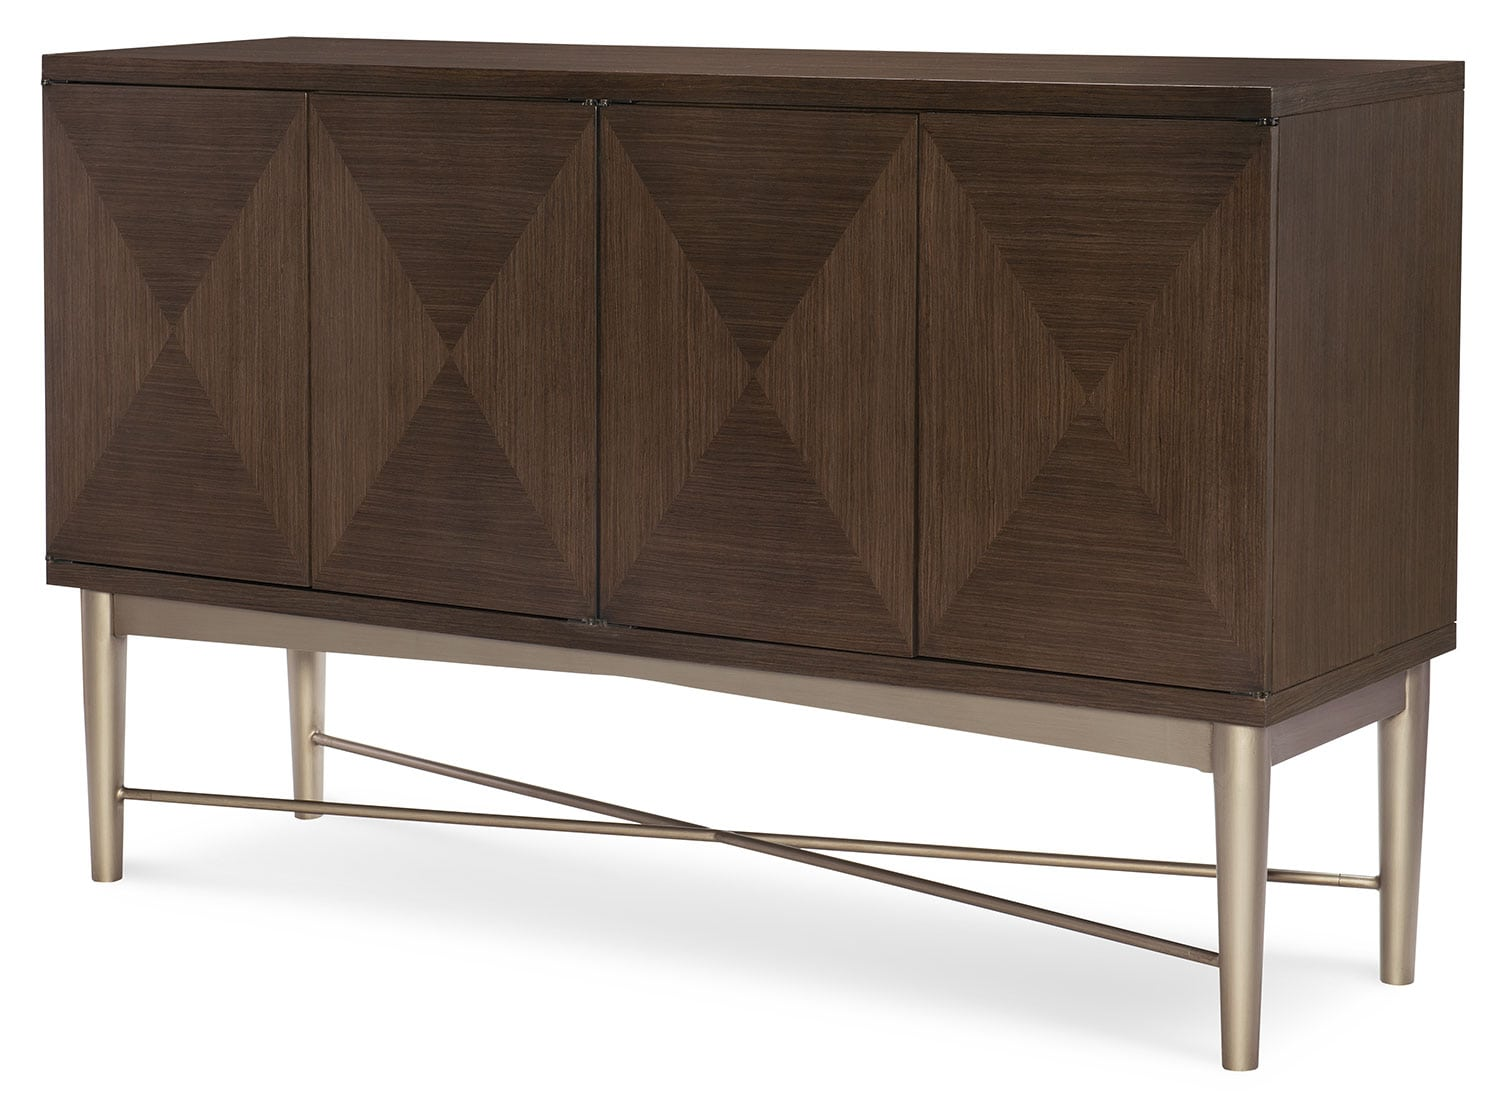 Dining Room Furniture - Rachael Ray Soho Credenza - Ash Brown